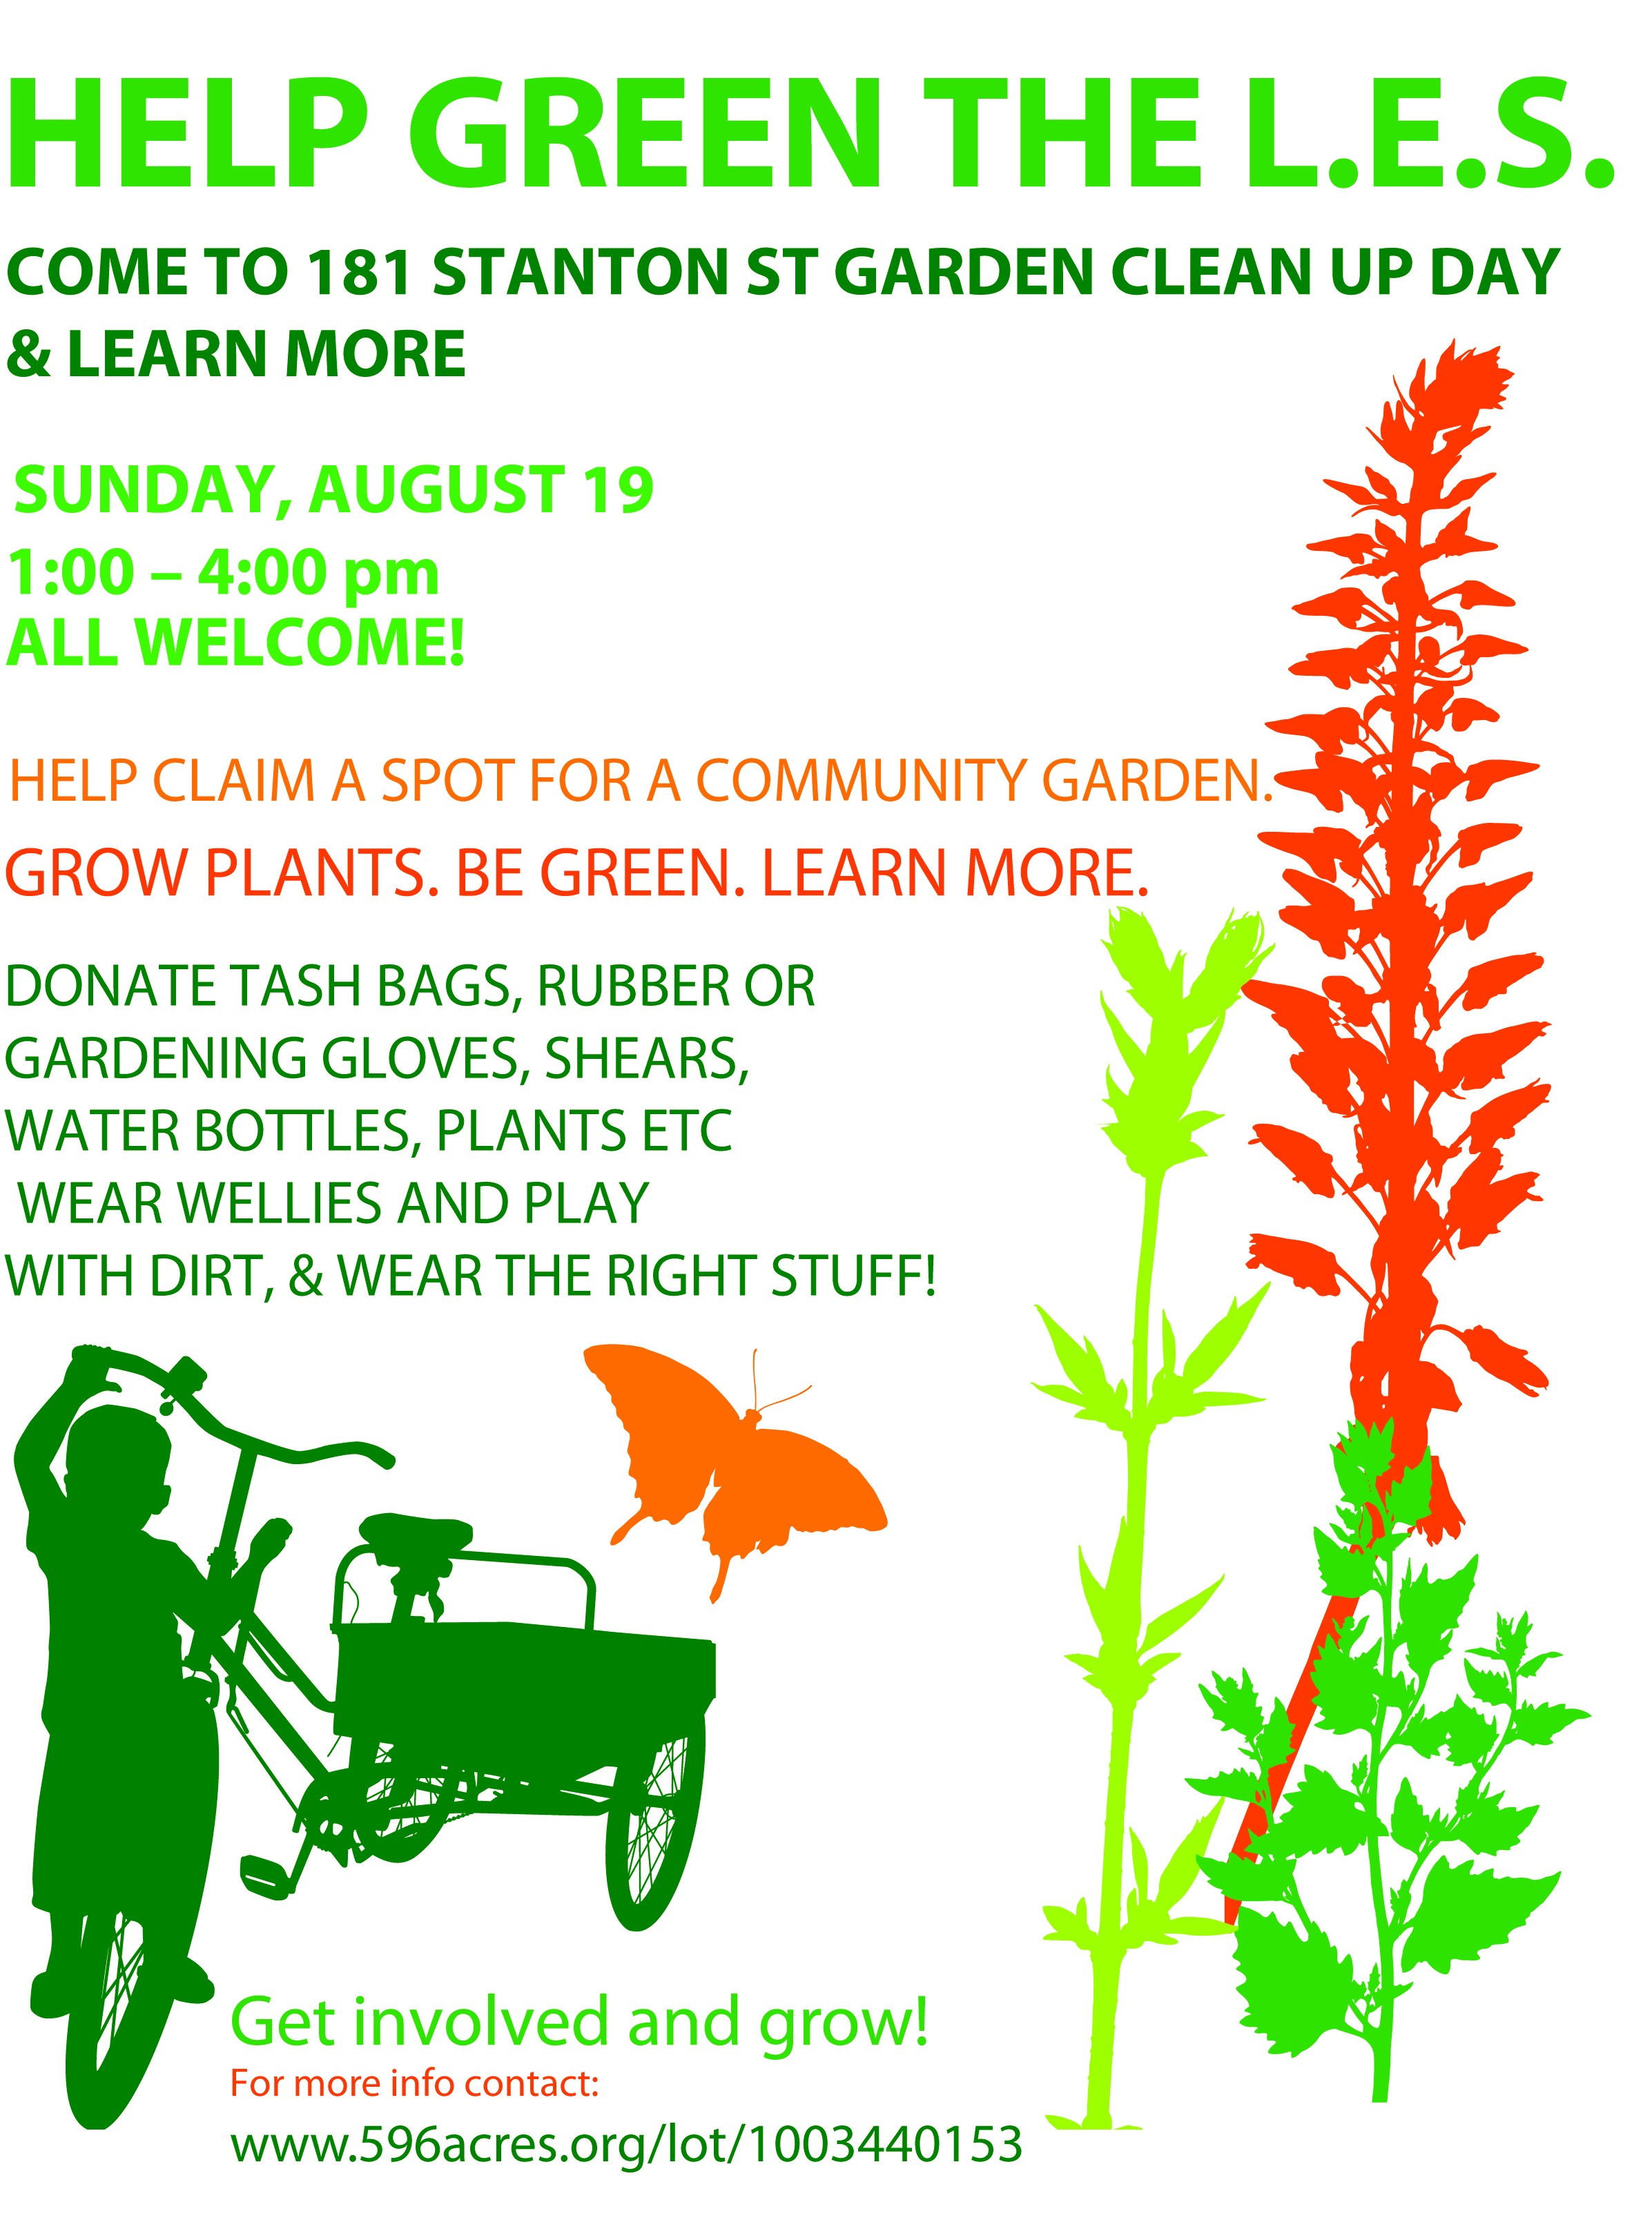 siempre verde living lots nyc hi all pls see attached final flyer hi elissa i have my friend leave a bunch address to you at the shul tmr pls feel to print pls note you can